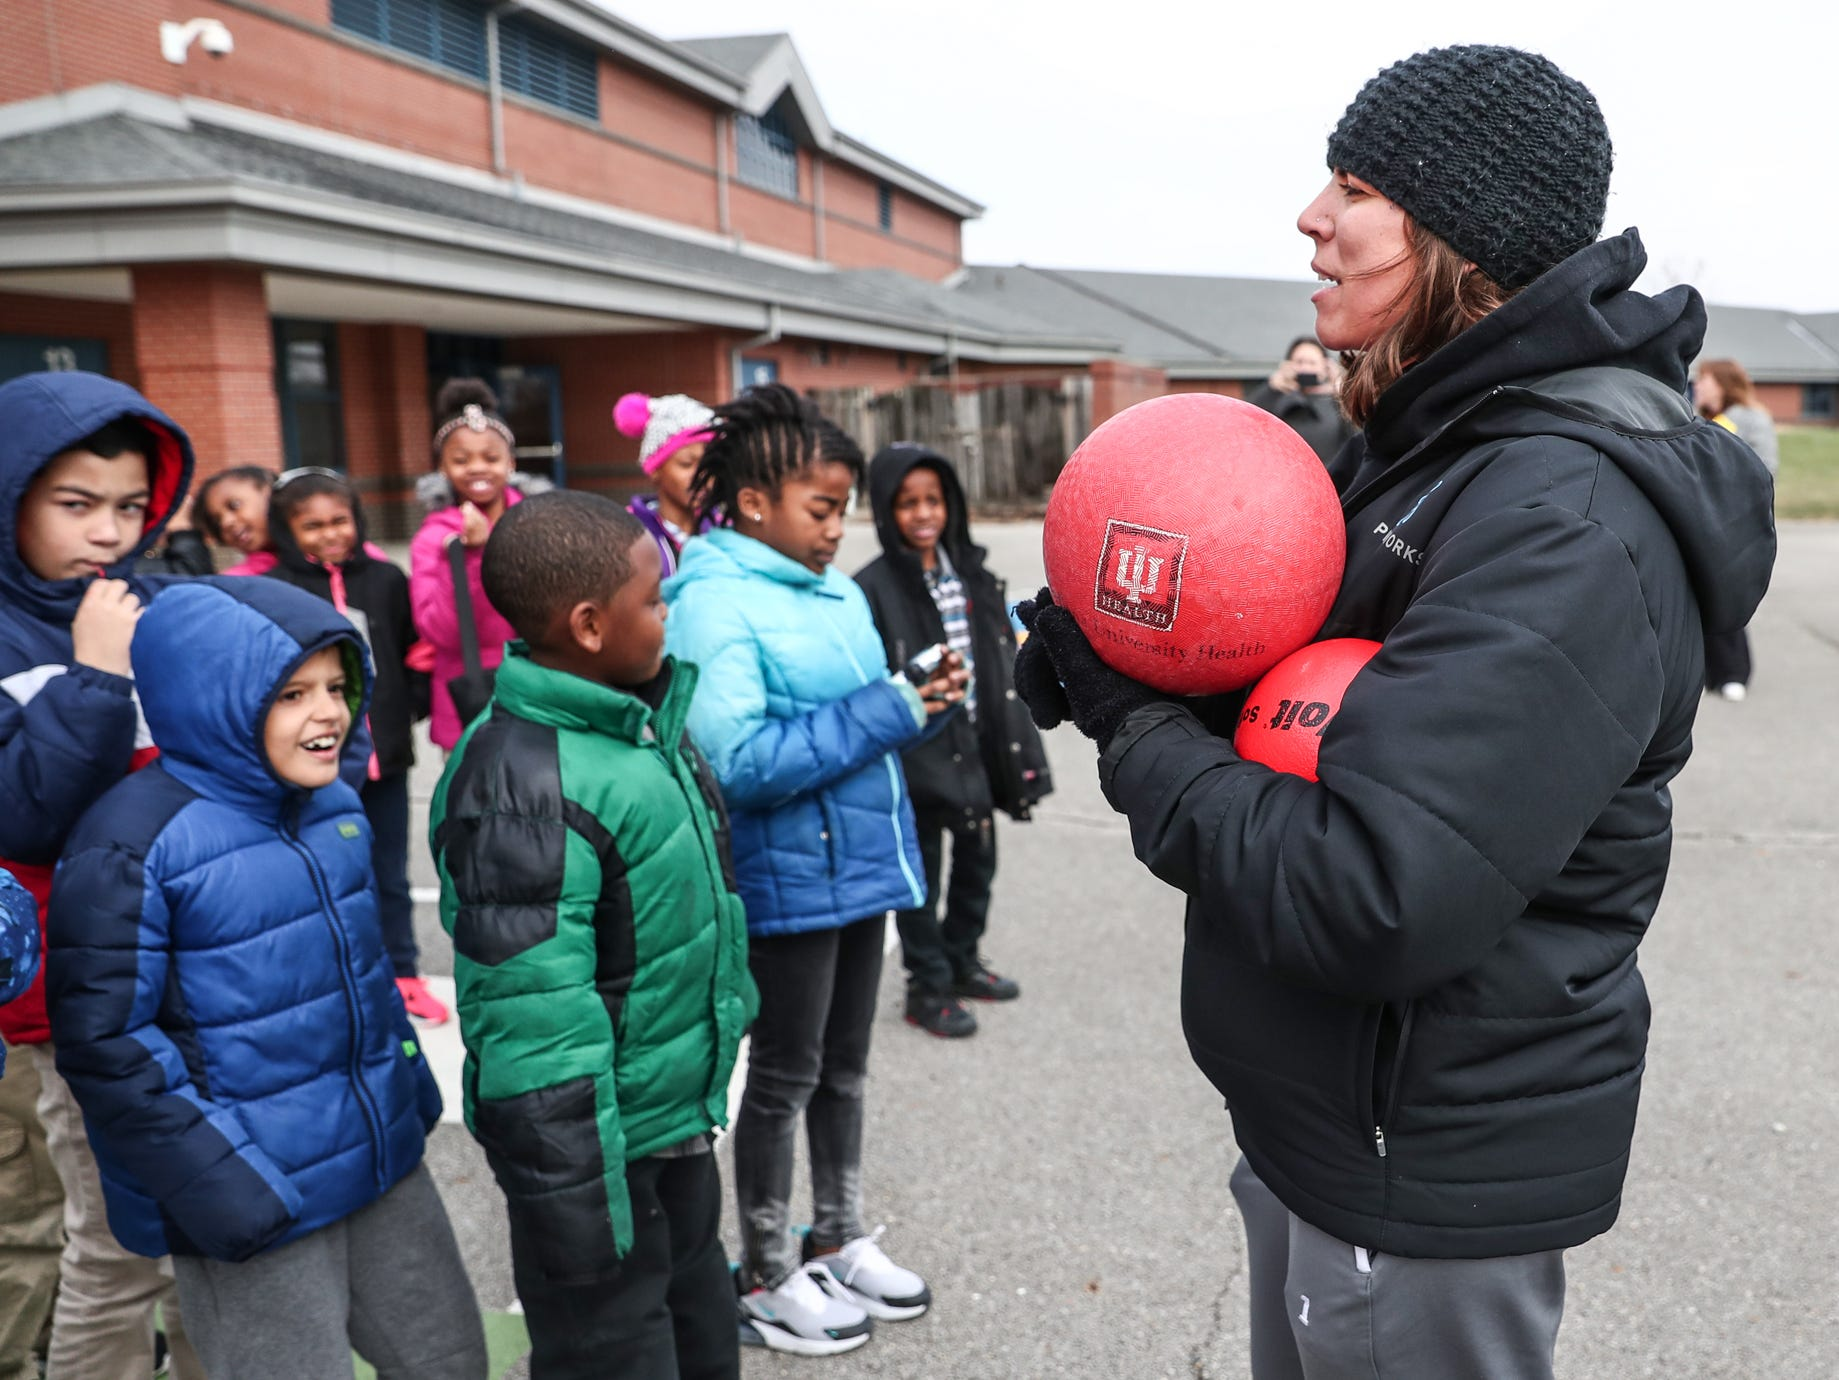 Playworks Coach Bailey Smith gathers a group of Sunny Heights Elementary School third graders during recess on Friday, Nov. 16, 2018. Playworks, as well as partners Jump IN for Healthy Kids, aims to keep kids healthy and active.